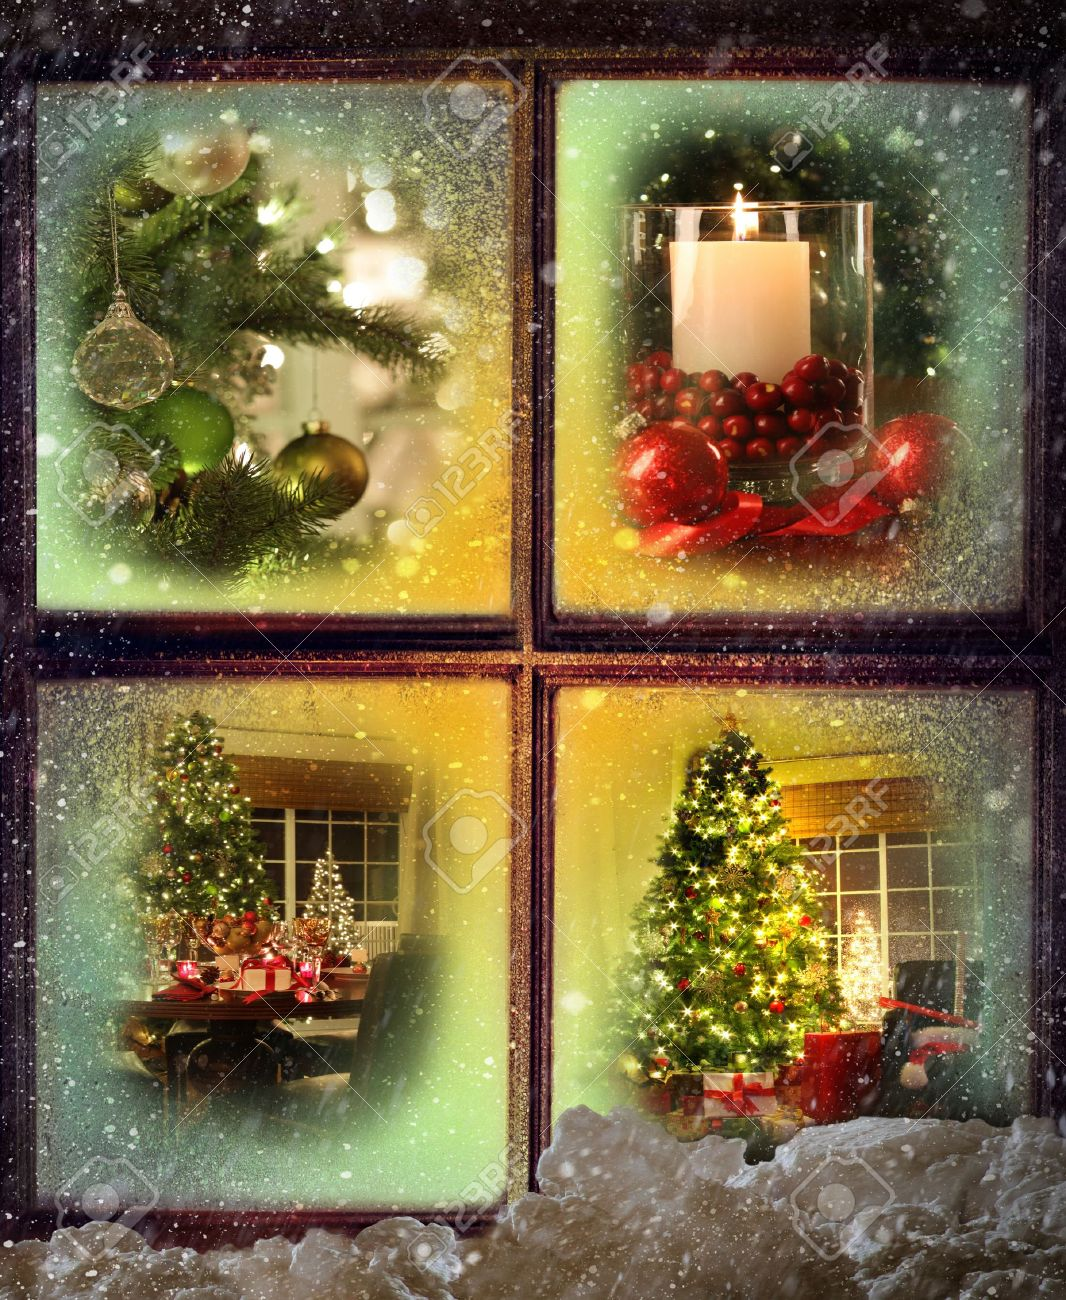 Christmas Scenes Images.Vignettes Of Christmas Scenes Seen Through A Snowy Wooden Window